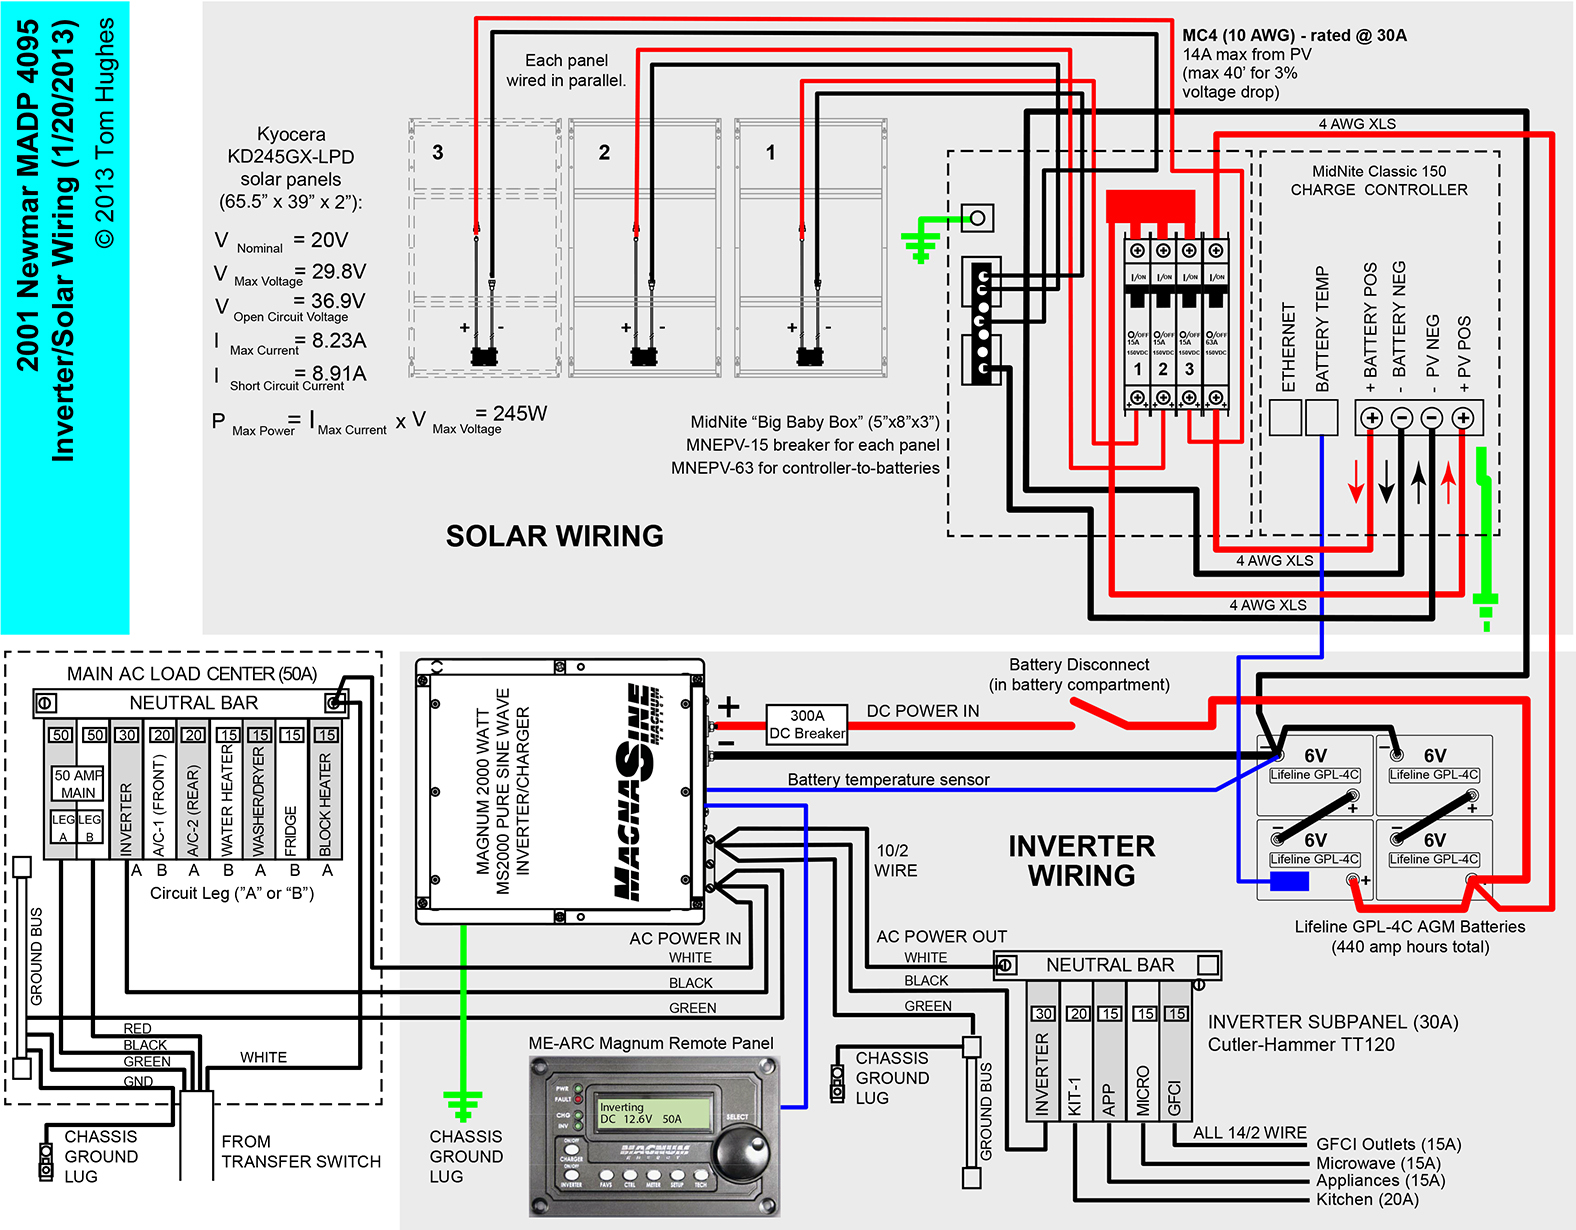 Fleetwood Pace Arrow Rv Wiring Diagrams furthermore Index3 also Radio Box For Rc Boats likewise Wiring Diagrams 2003 Spartan Motor Coach together with Hino 268 Wiring Diagram. on spartan motors wiring diagram